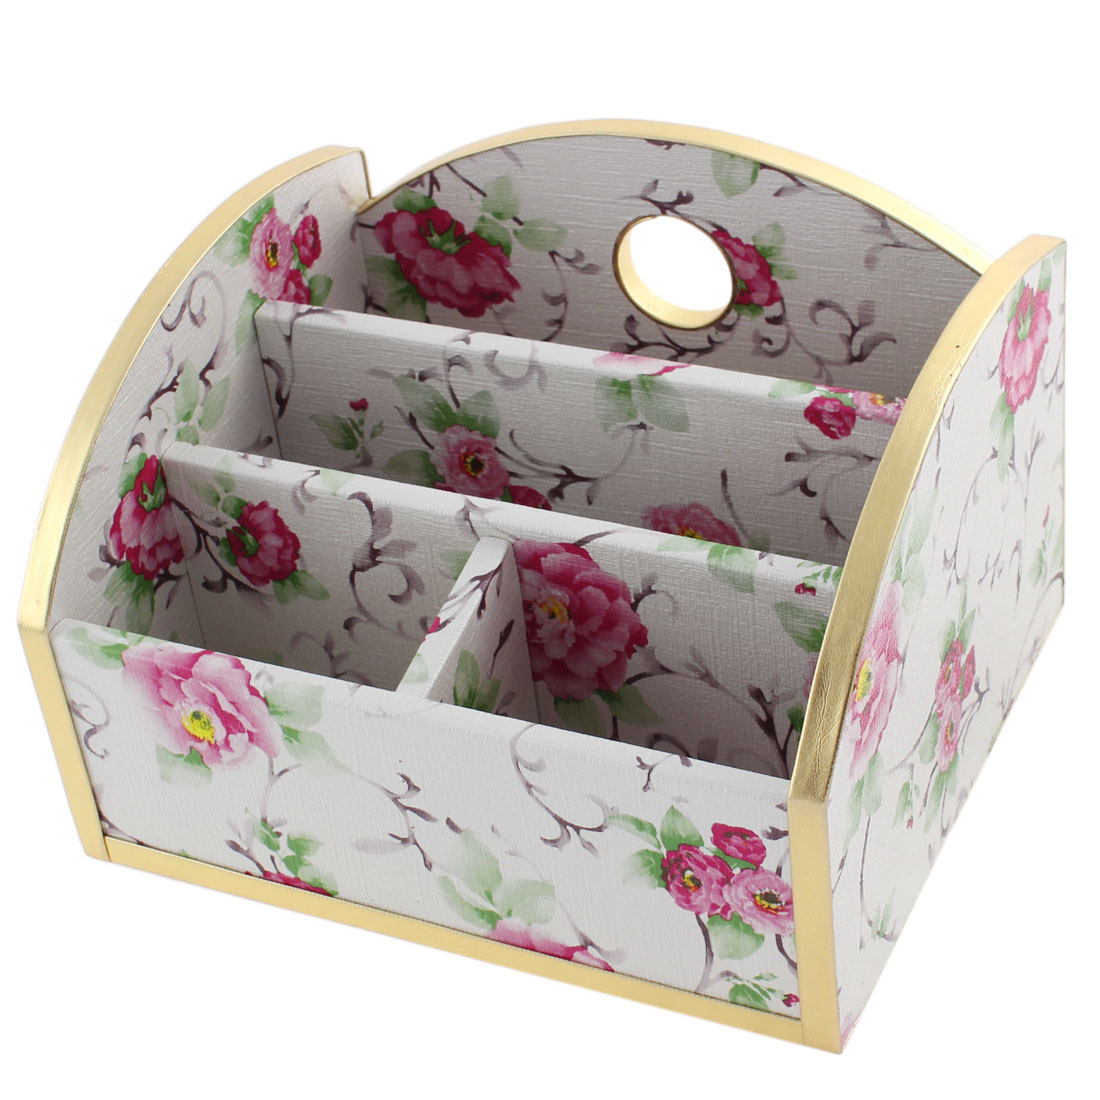 Home Craft 4 Slot Design Peony Printed Universal Wooden Mobile Phone Storage Box